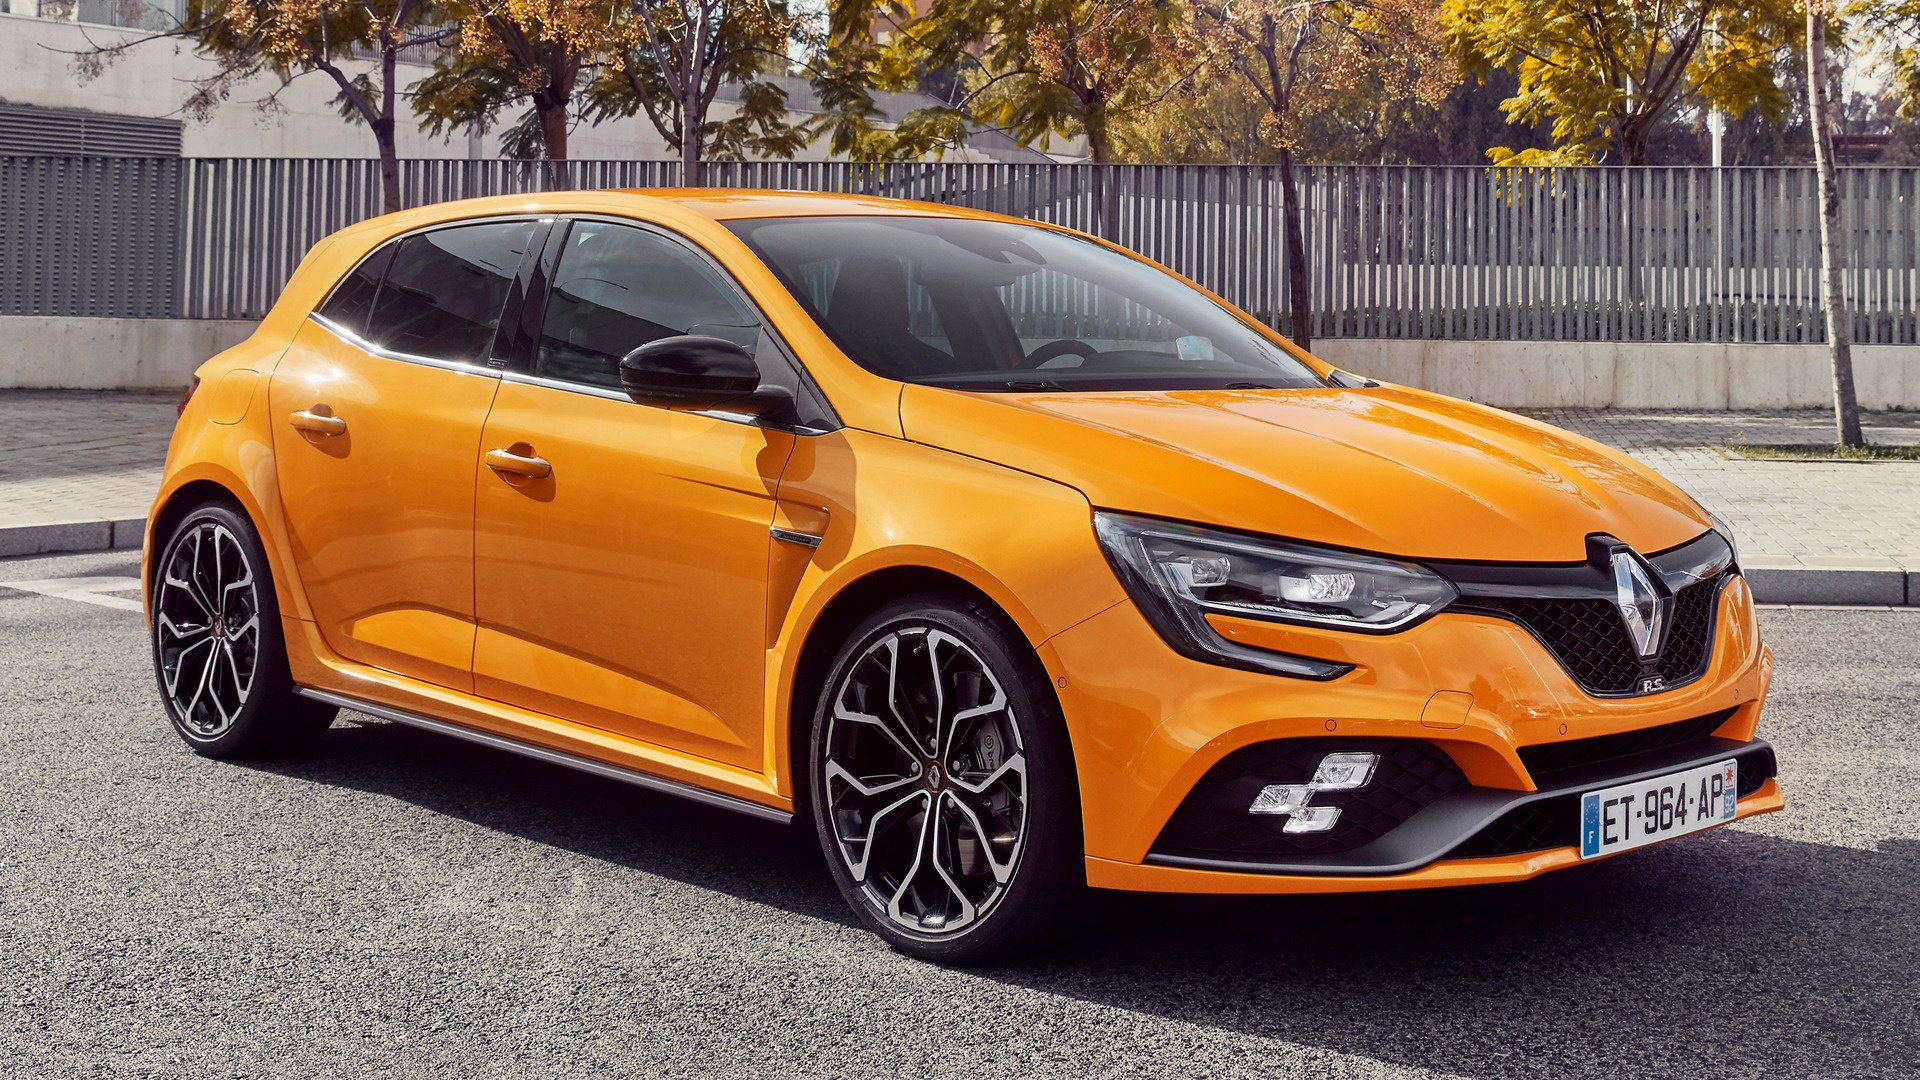 renault megane rs 2018 wallpapers and hd images car pixel. Black Bedroom Furniture Sets. Home Design Ideas